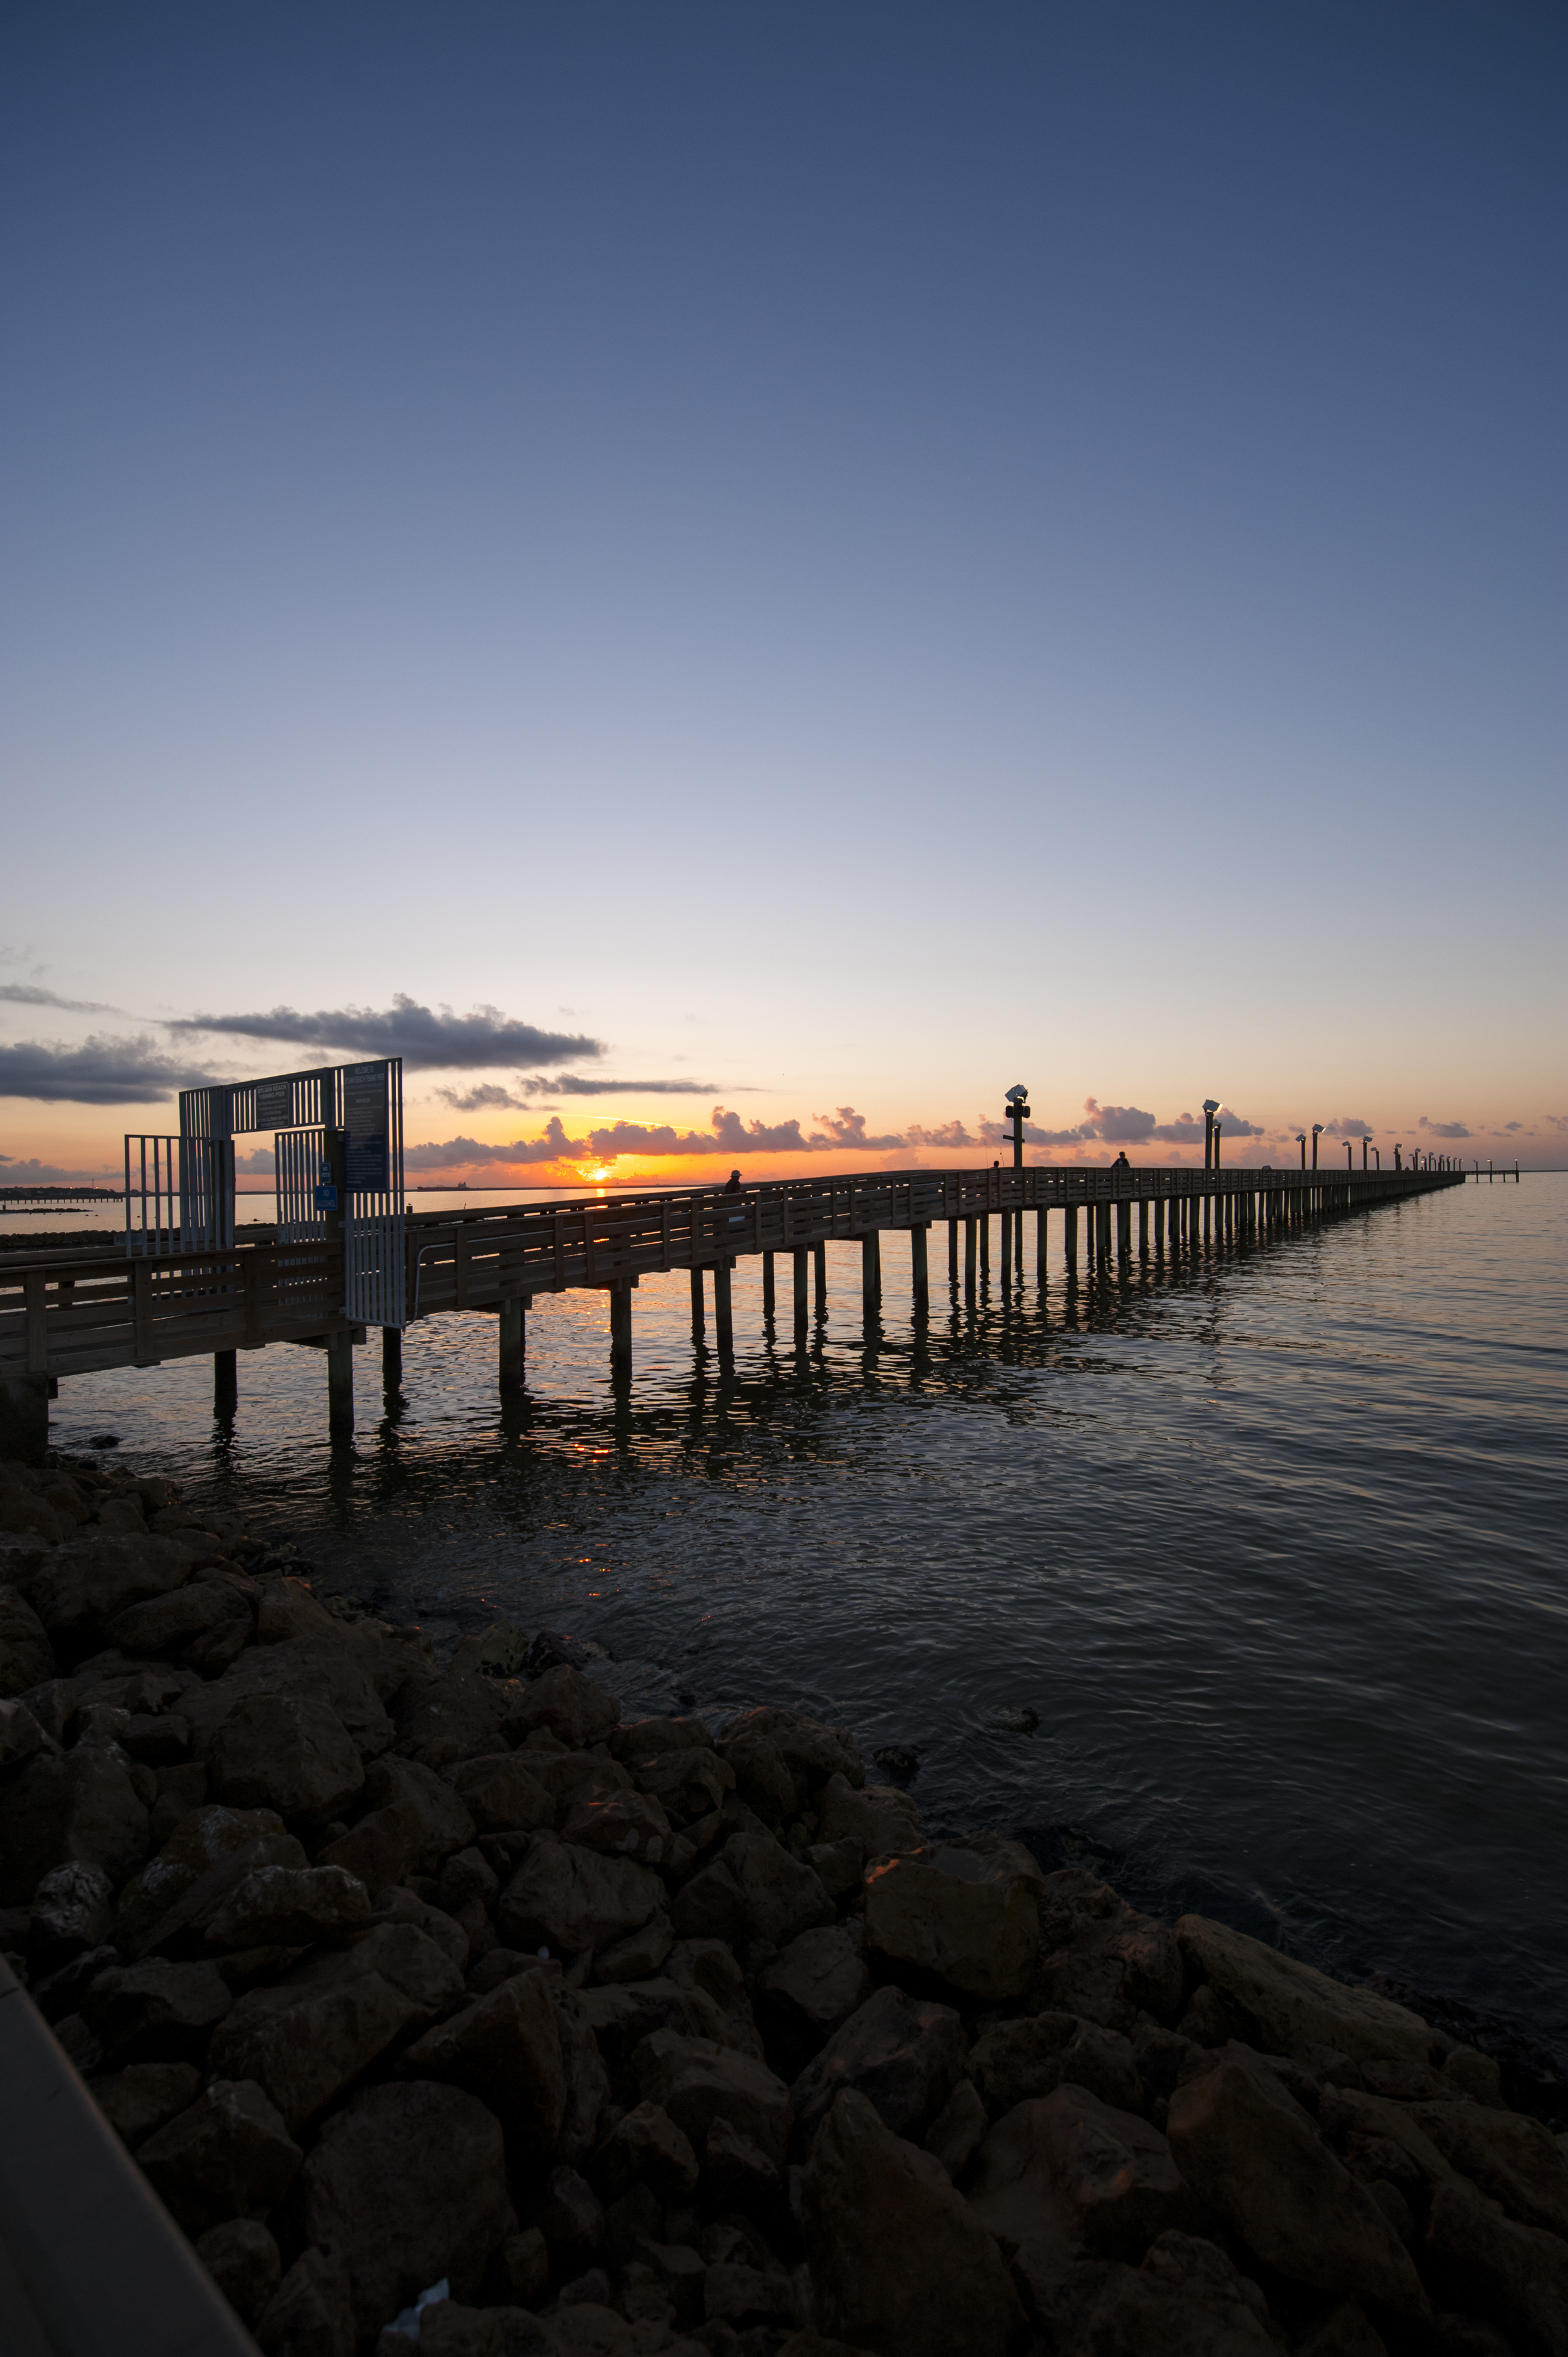 Sylvan Beach Park has an 1,100 foot pay to fish fishing pier that is known for great catches. From speckled trout to drum you can always be sure you'll have to put up a good fight in La Porte!